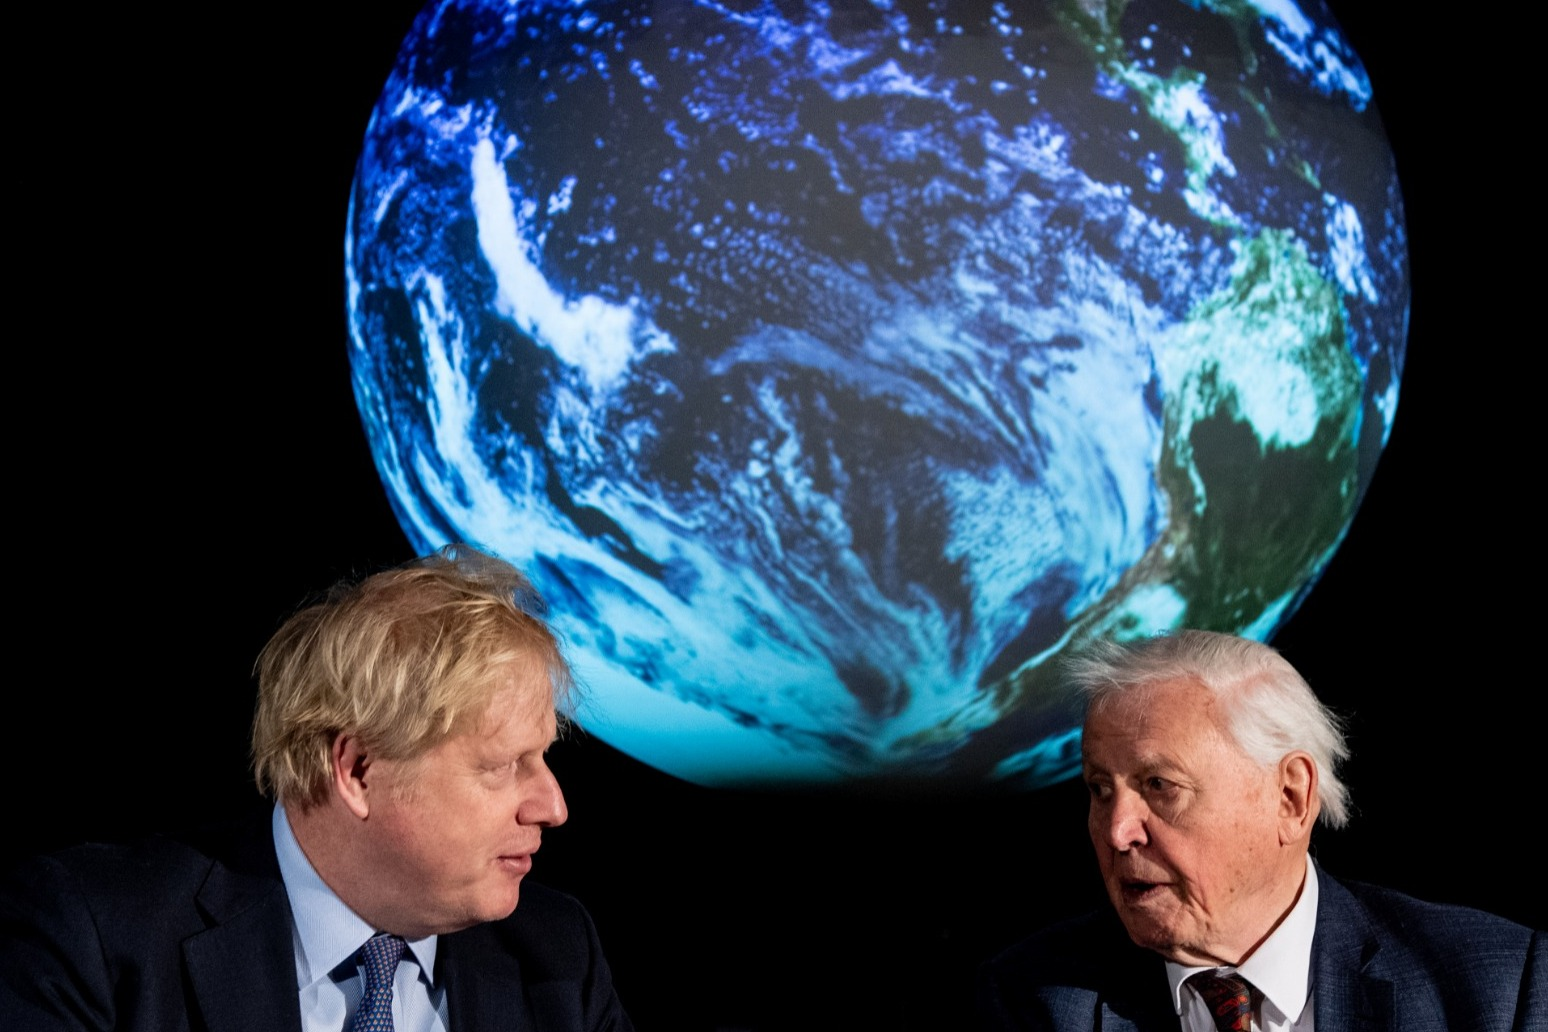 PM and Government must put all their focus on crucial climate summit